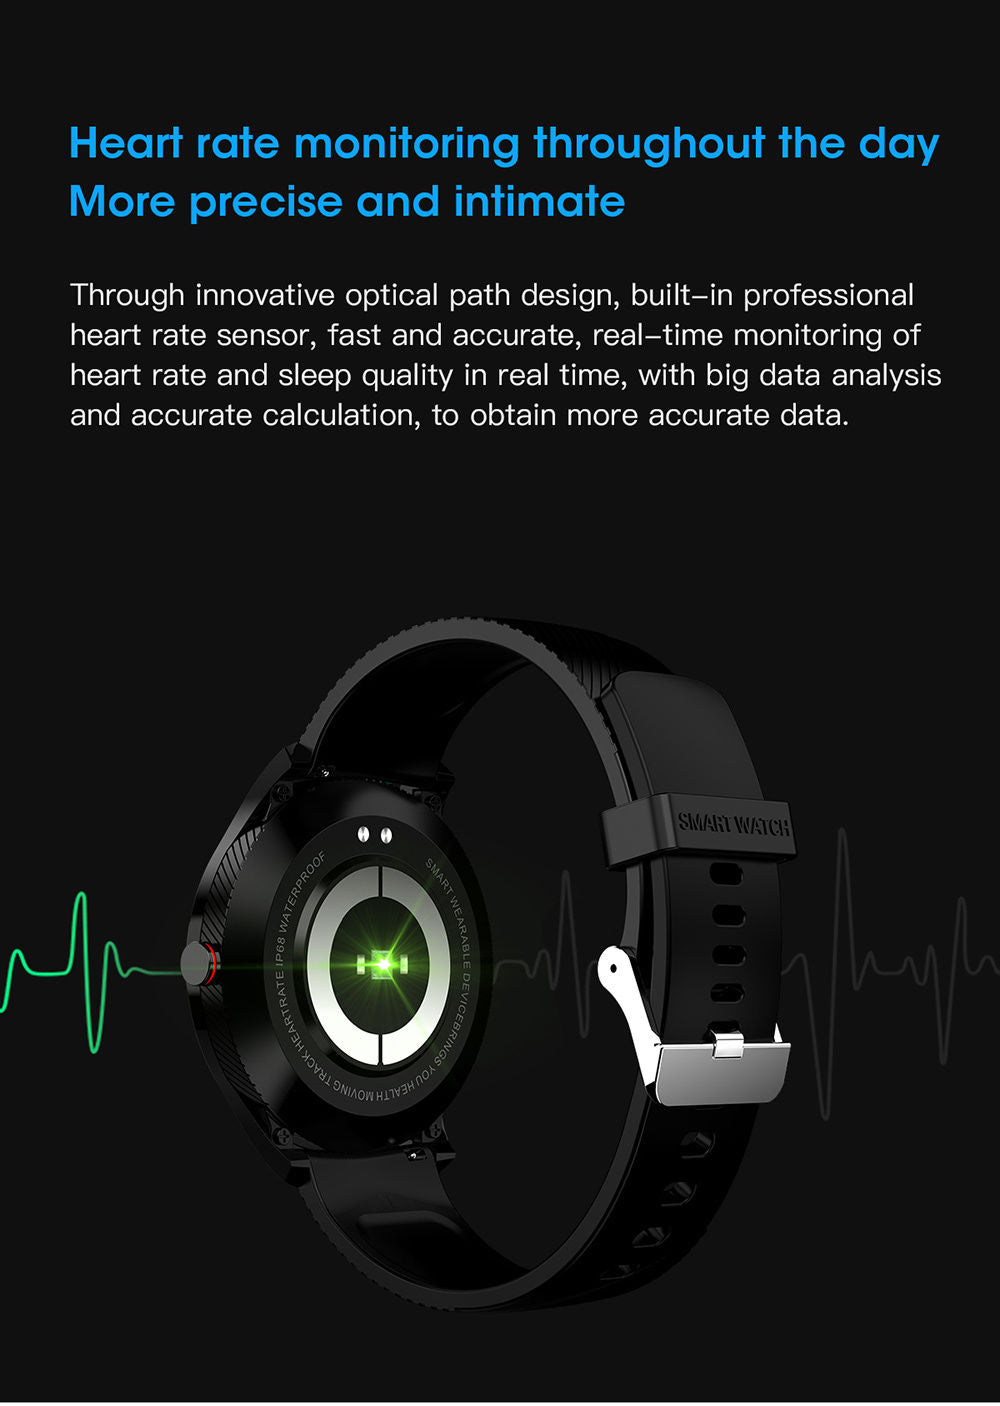 detailed description of L9 smart watch 12